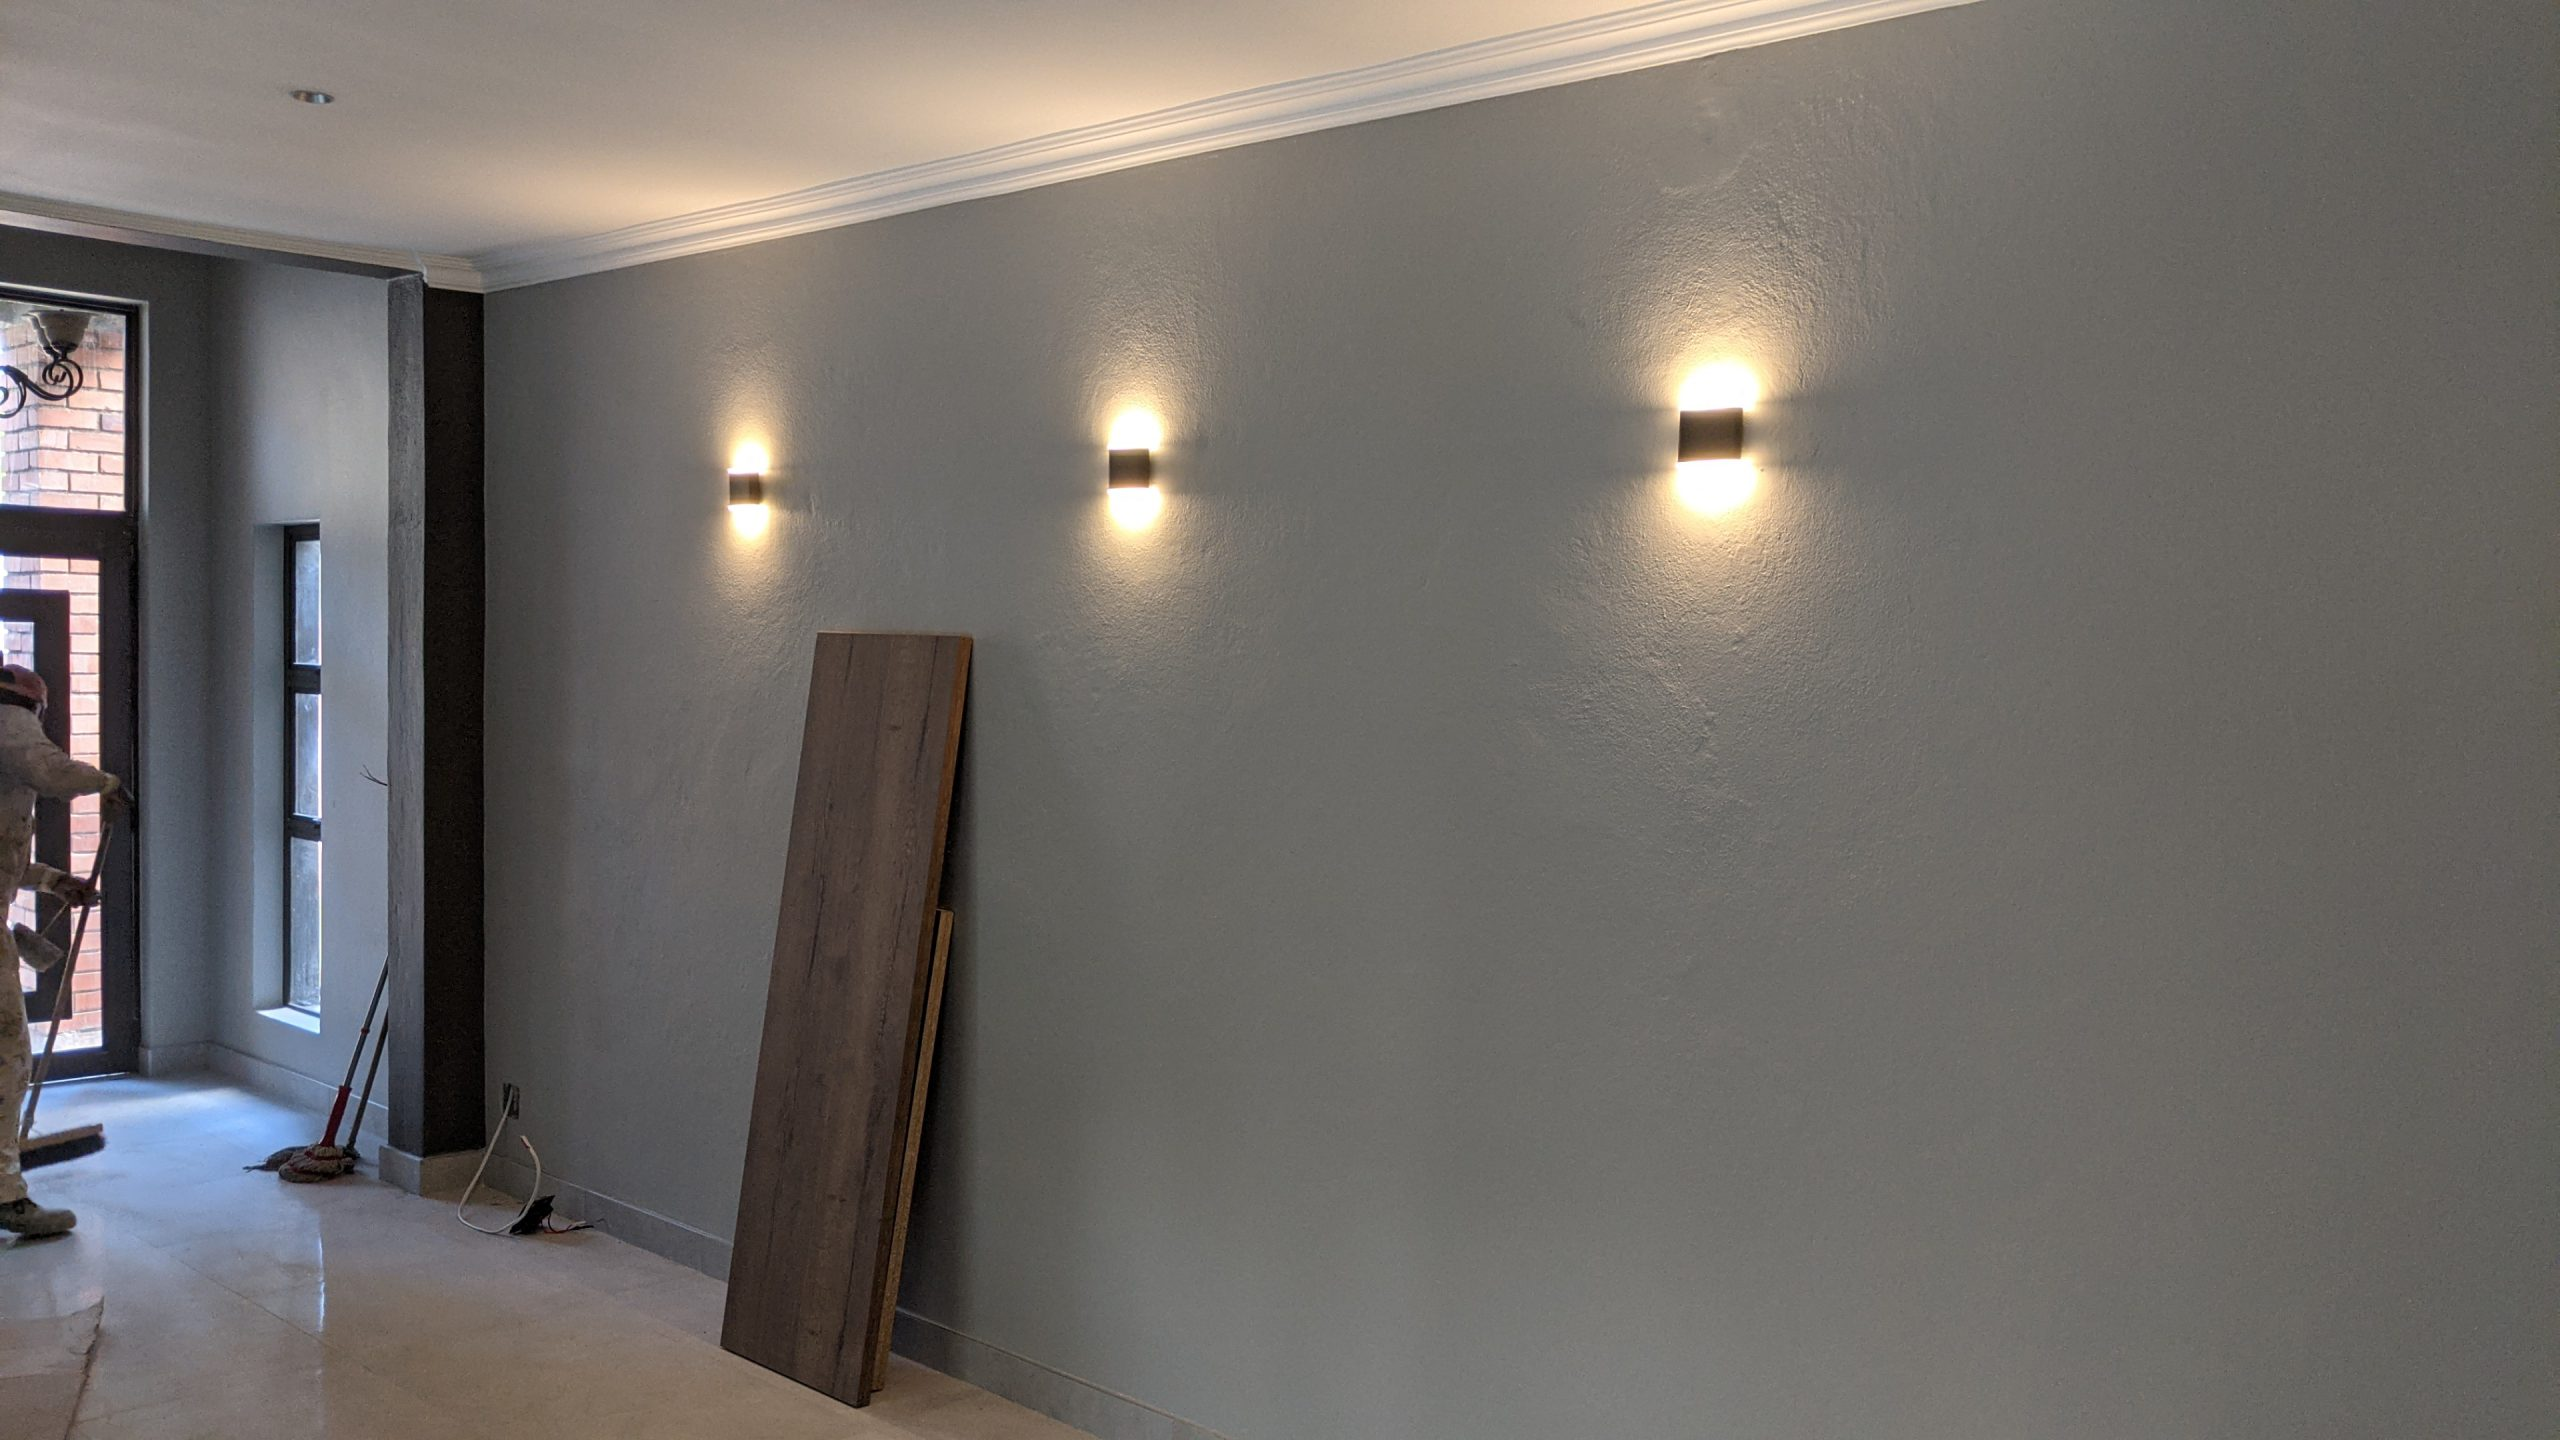 PXL_20201203_134640631 | Electrical Contractor in Centurion | Electrician | Sunstroke Electrical